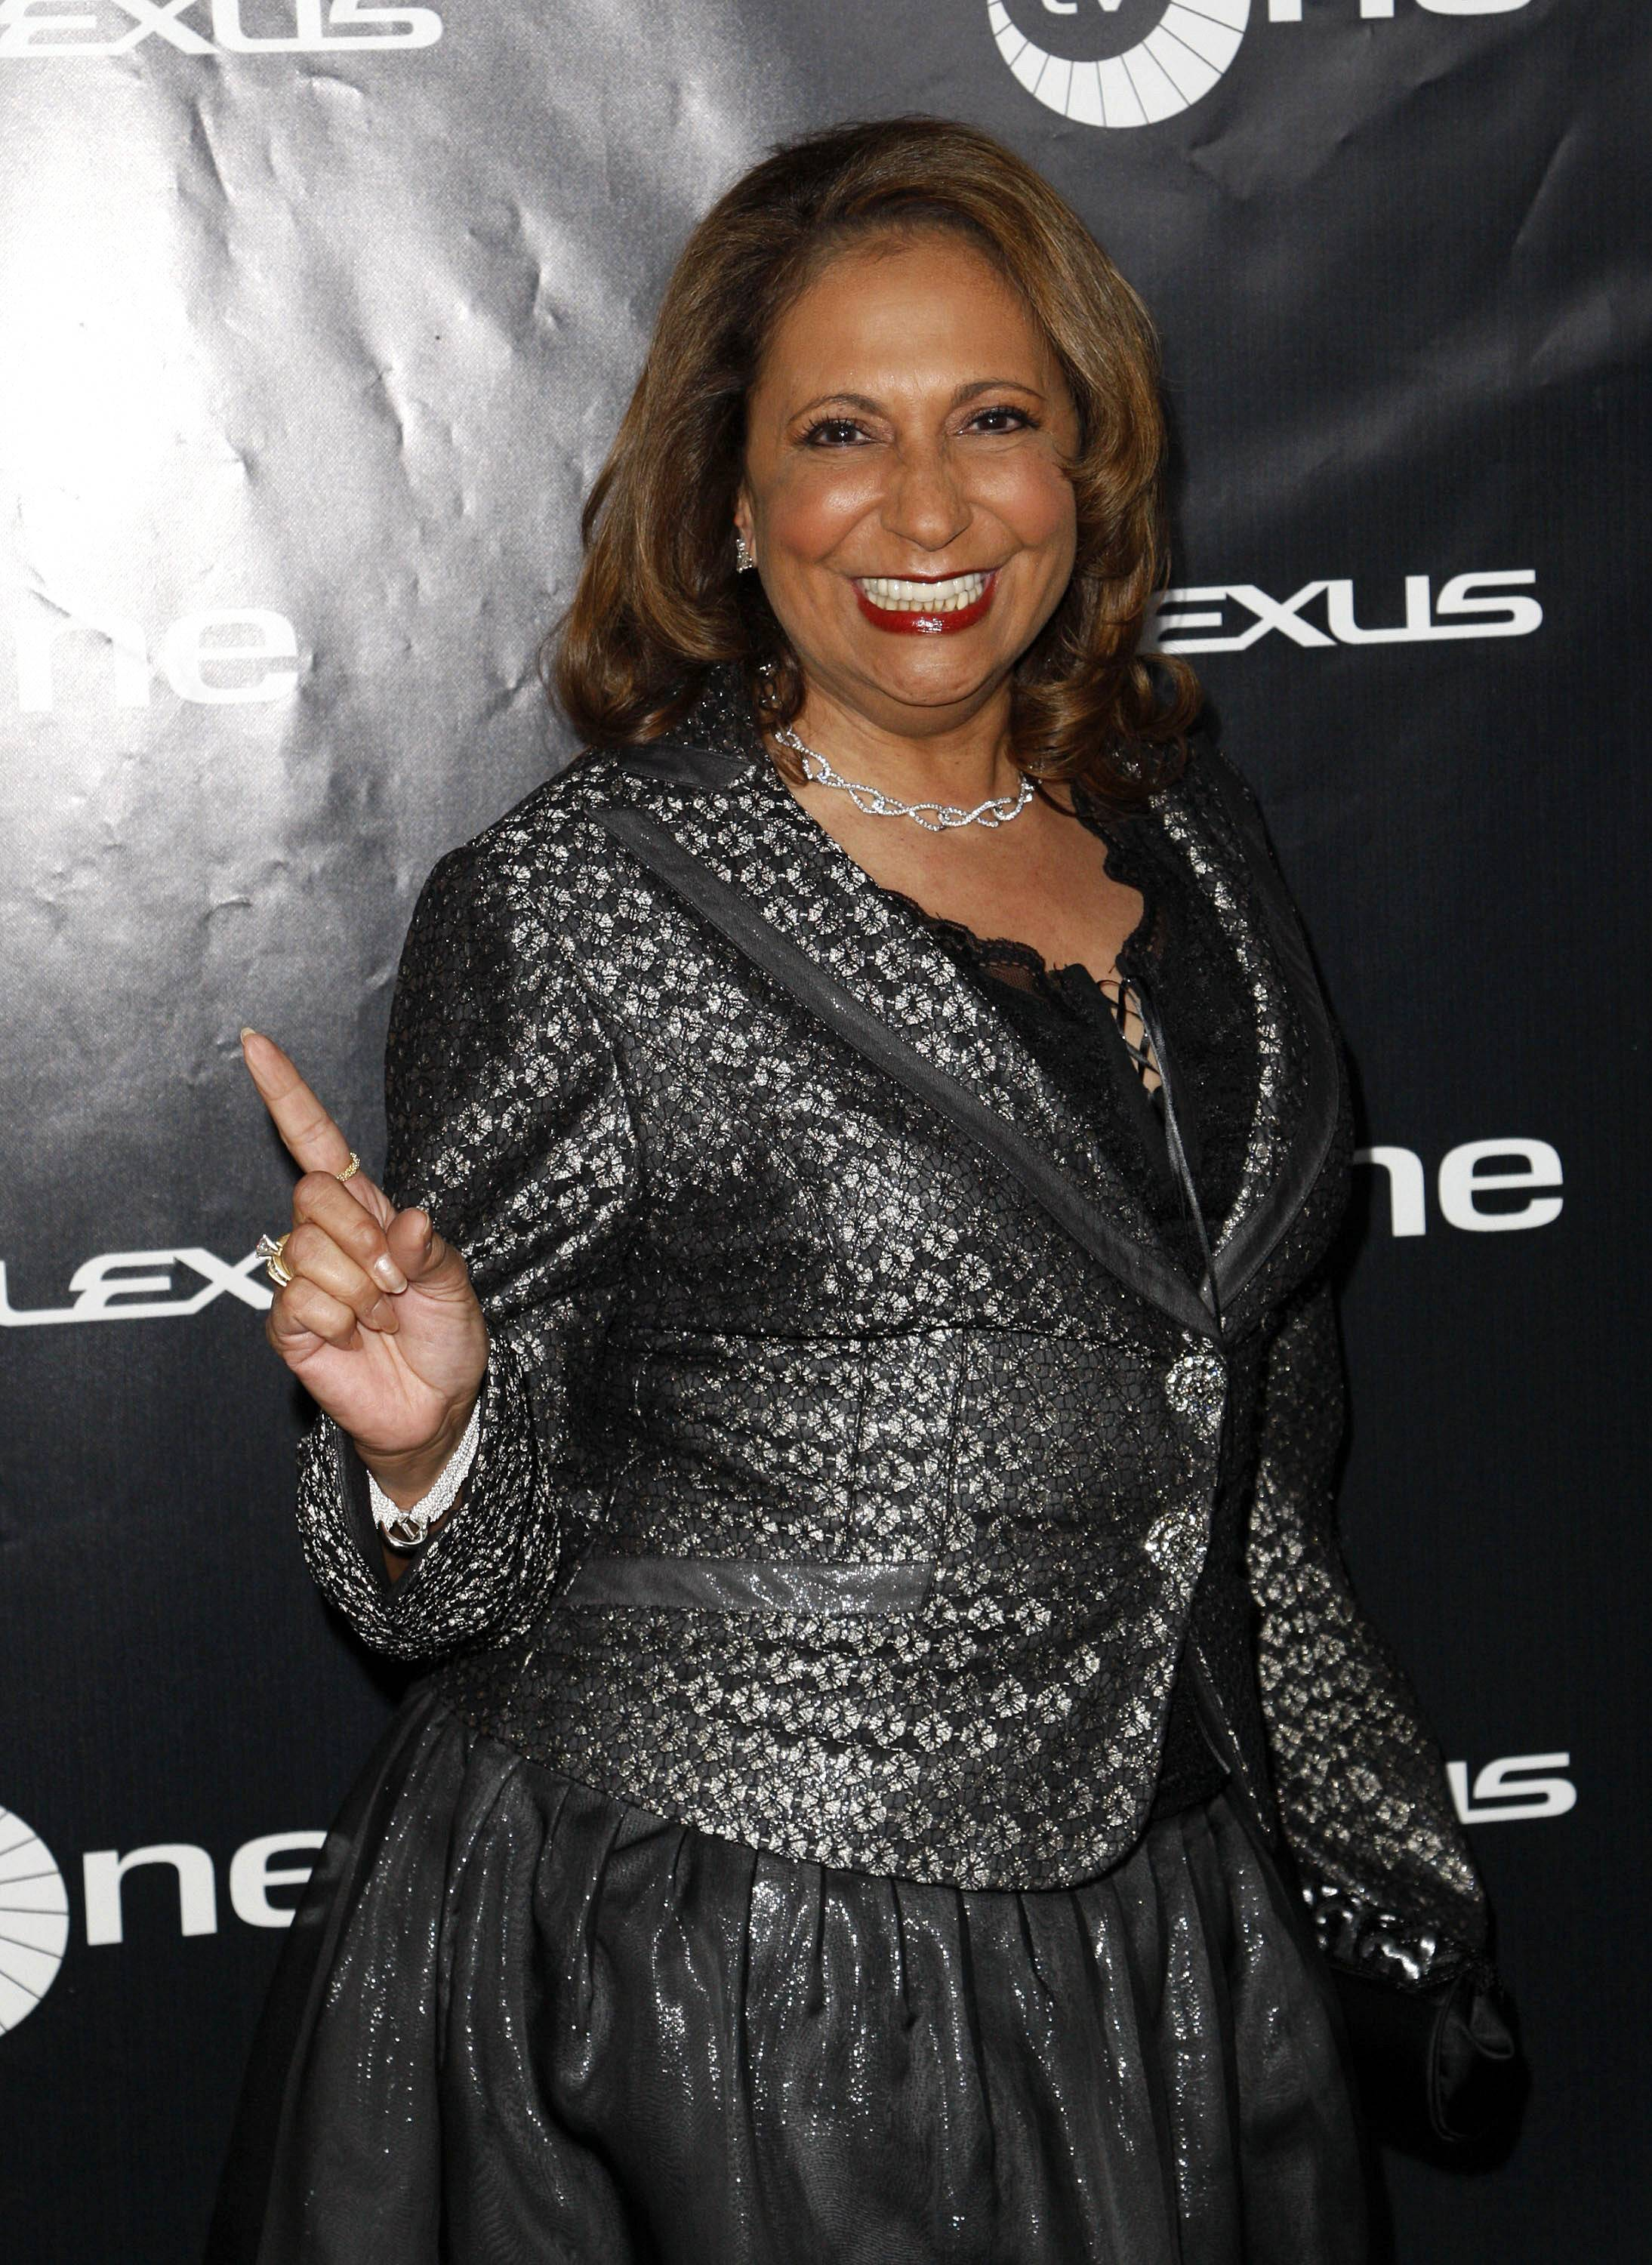 Cathy Hughes - Cathy Hughes rose from single mom to leading radio executive, founding Radio One, with 55 music and entertainment stations in 16 markets across the U.S., and more than $400 million in revenue a year.   (Photo: Michael Buckner/Getty Images)